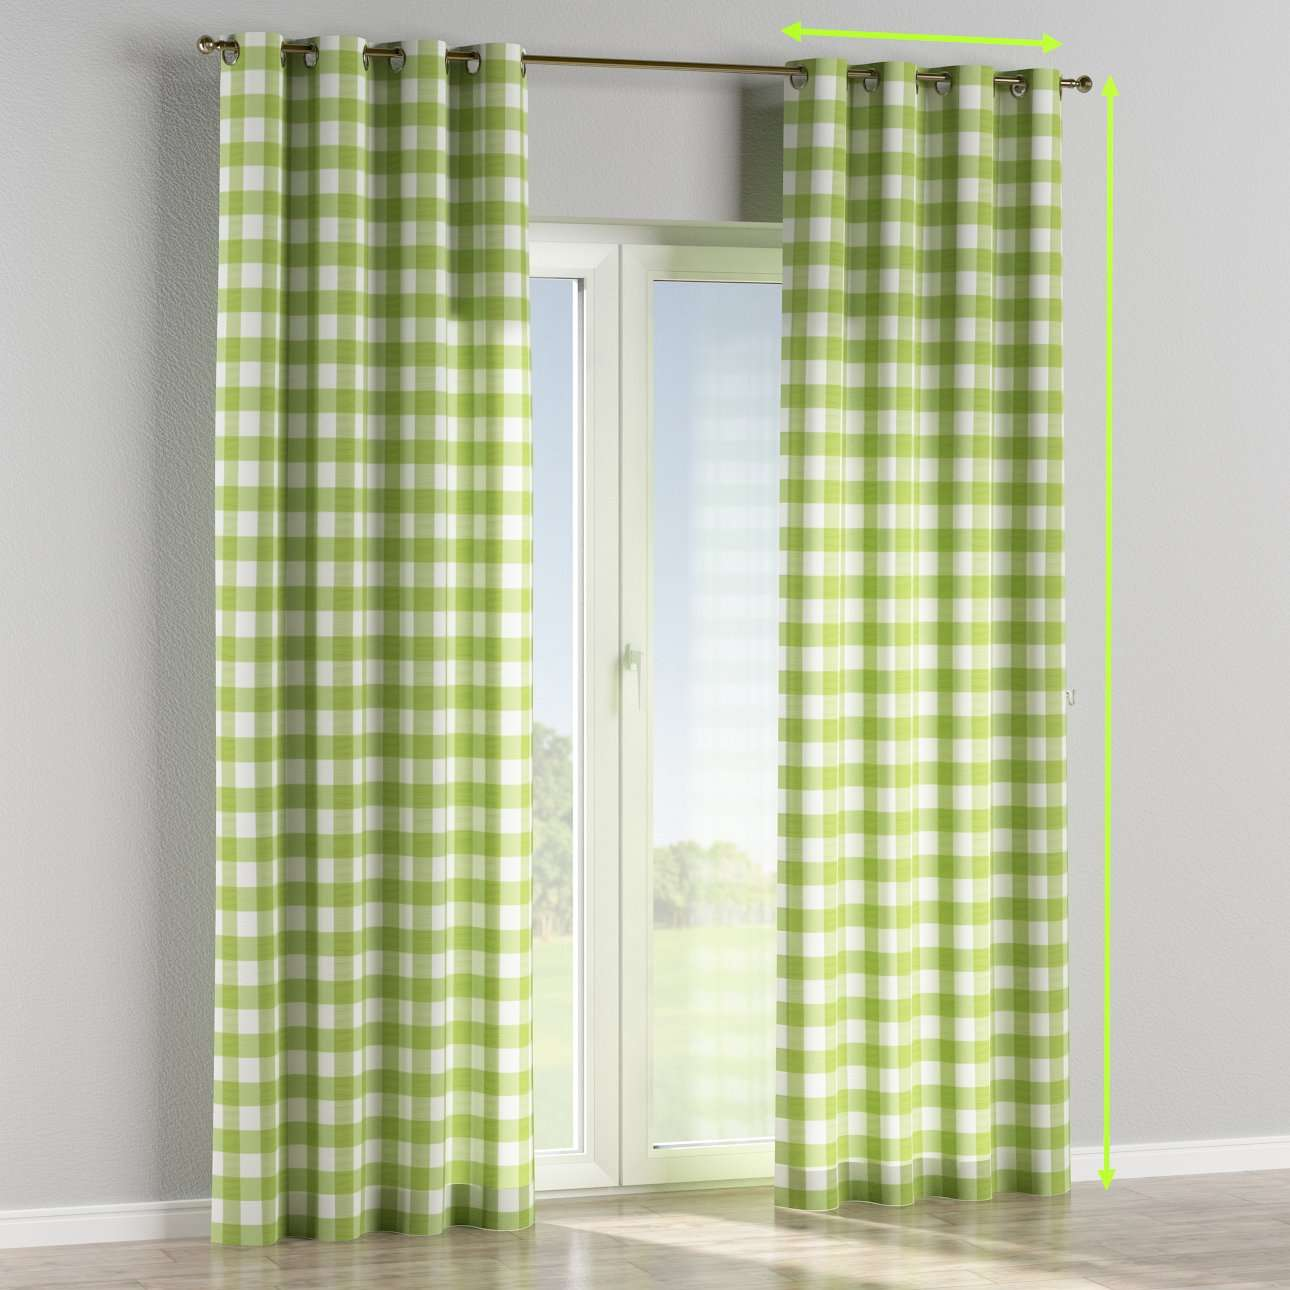 Eyelet curtains in collection Quadro, fabric: 136-36